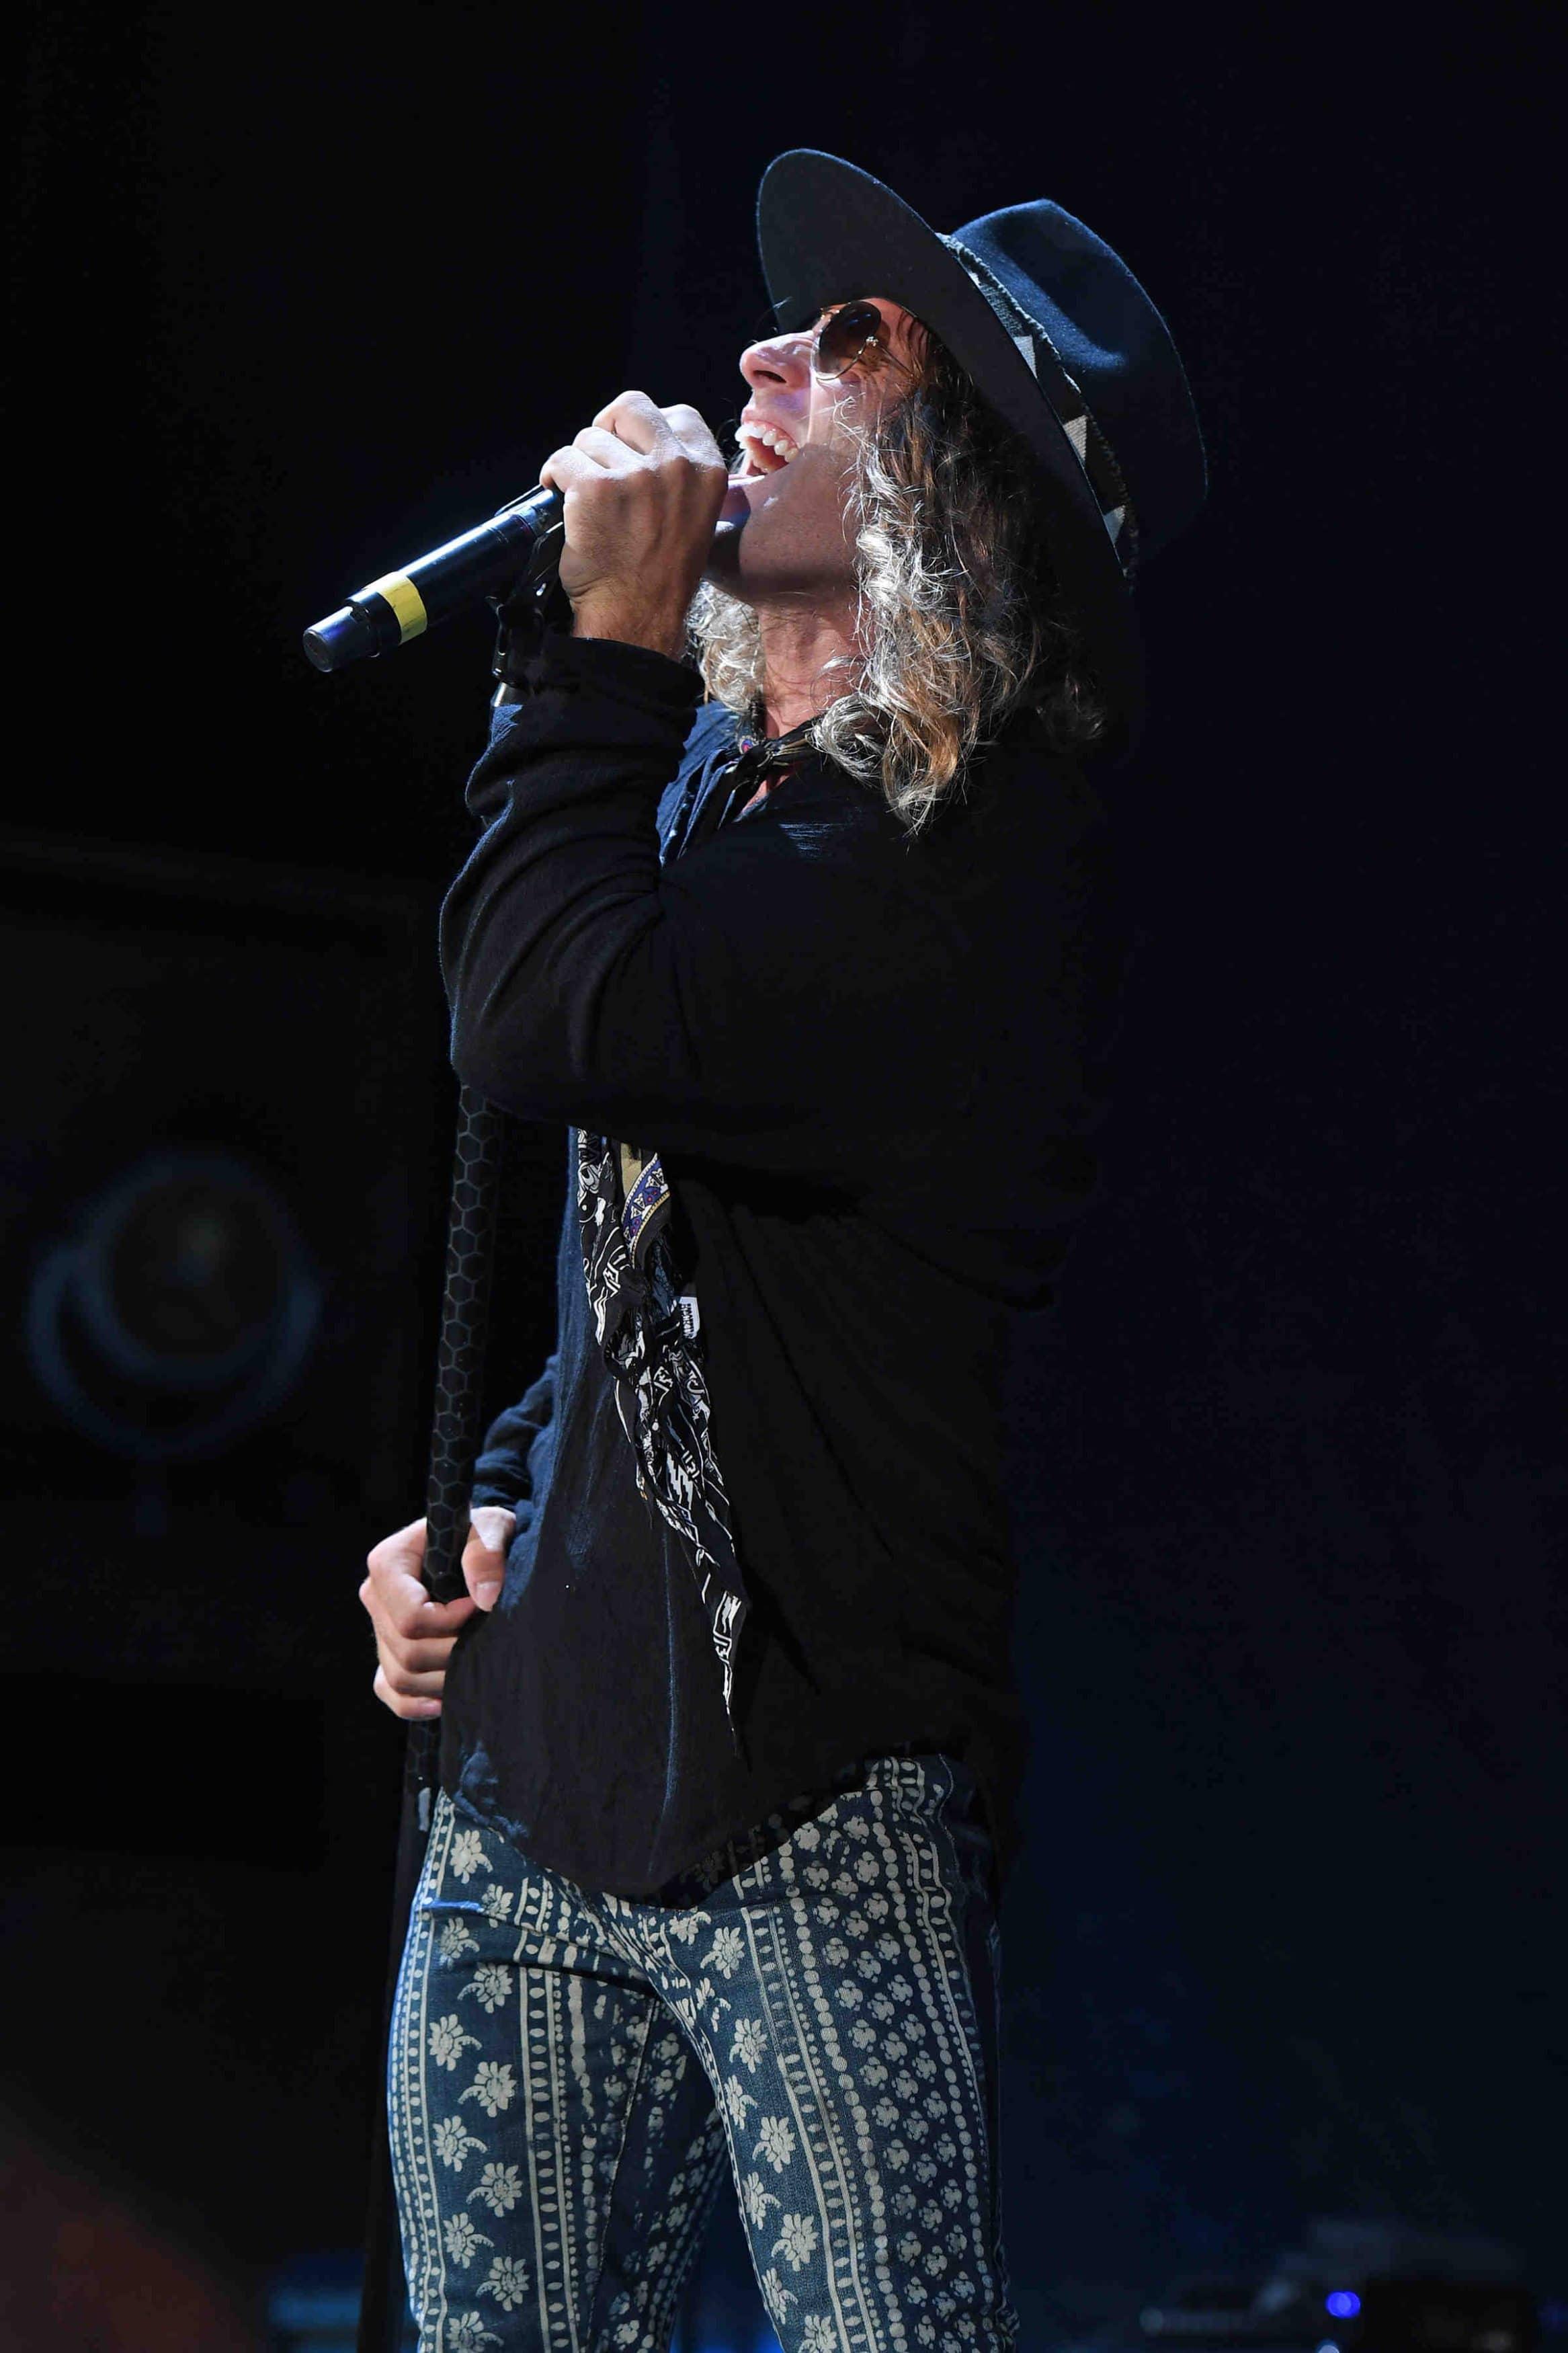 Singer Marc LaBelle performs in West Palm Beach, Florida